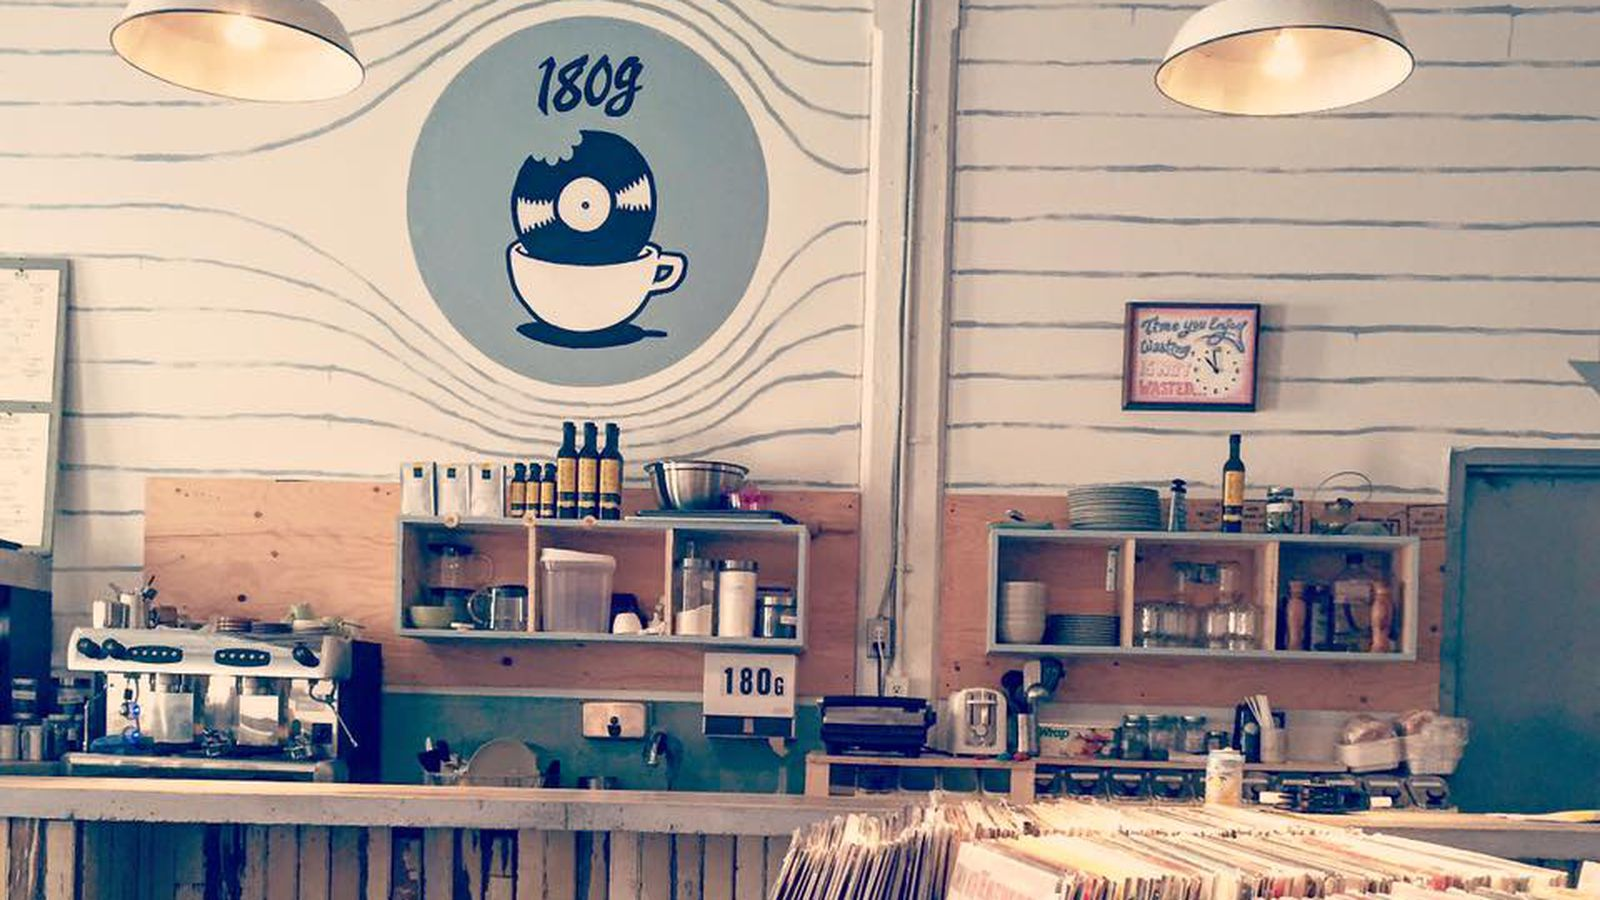 180g Gives Mile Ex Montreal Coffee Sandwiches And Vinyl